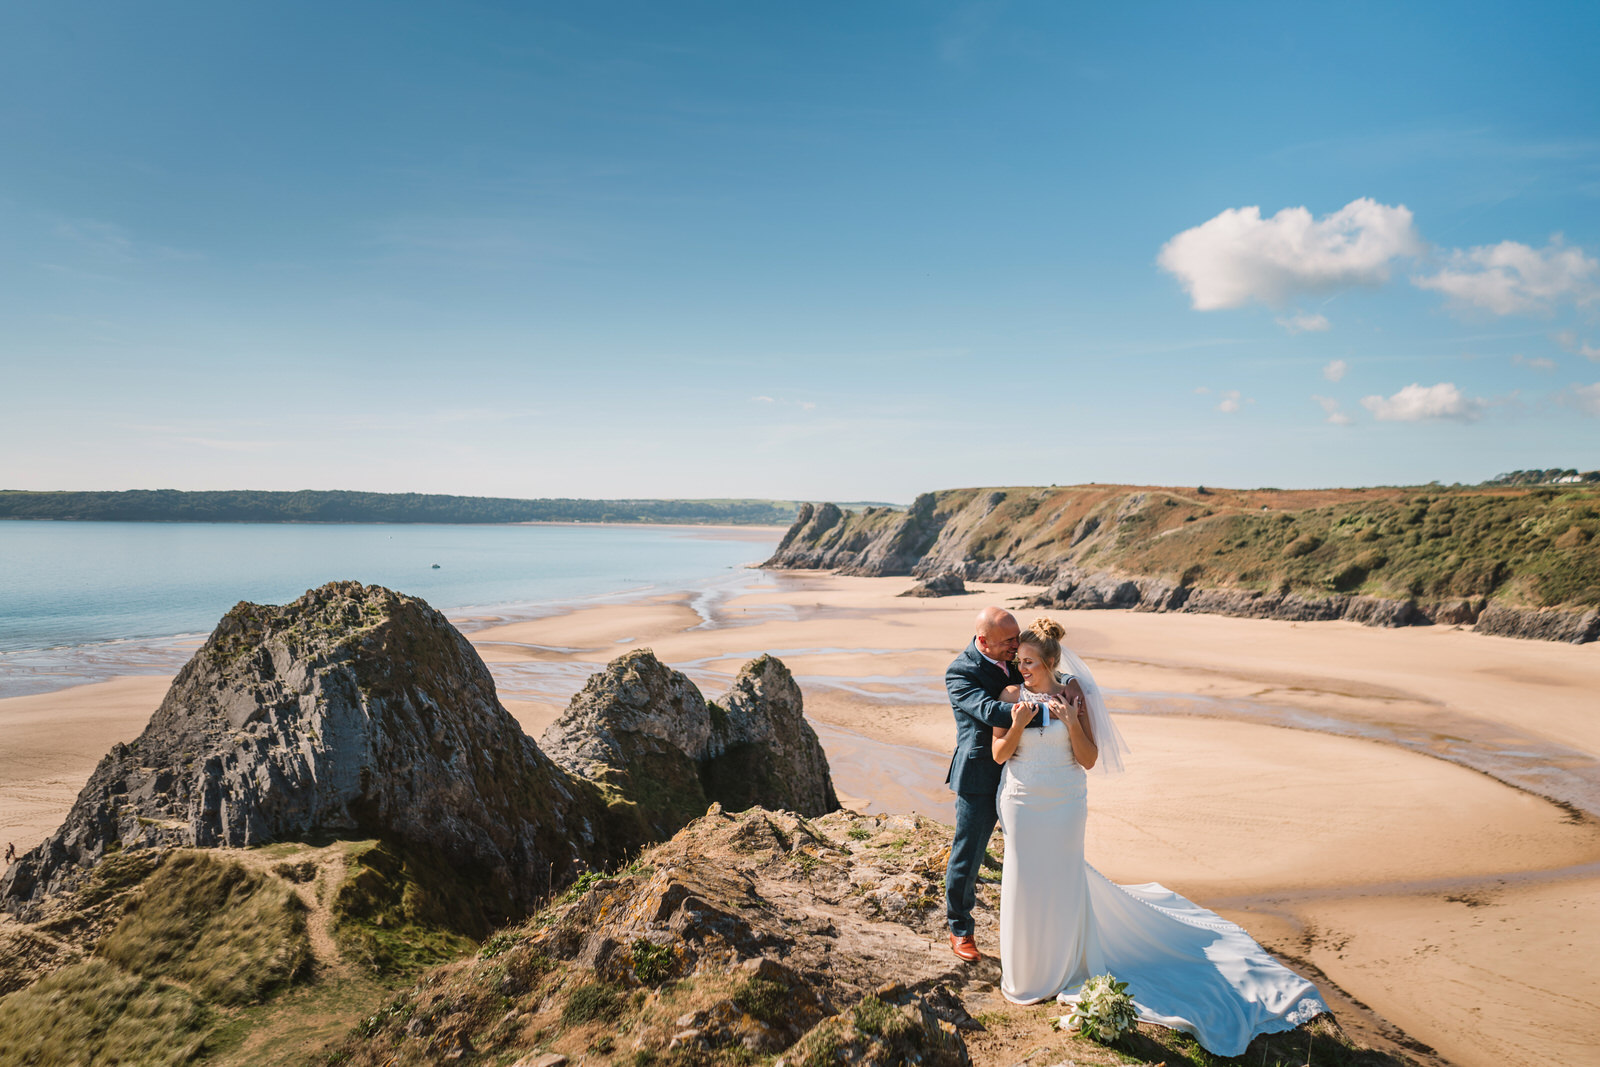 South Wales offer some of the most breathtaking wedding venues. - Whether it's amongst the beachside venues of Gower, the urban city centres of Swansea, Cardiff, or even the mountain peaks of Brecon. As long as there's a little adventure & passion for creativity, we're in! When we aren't filming a wedding, we're out scouting, looking beyond the obvious to find dramatic views or rustic backdrops & matching them to your individual personalities.Get to know our relaxed style by having a good nose through our fully loaded wedding photo & video blogs.